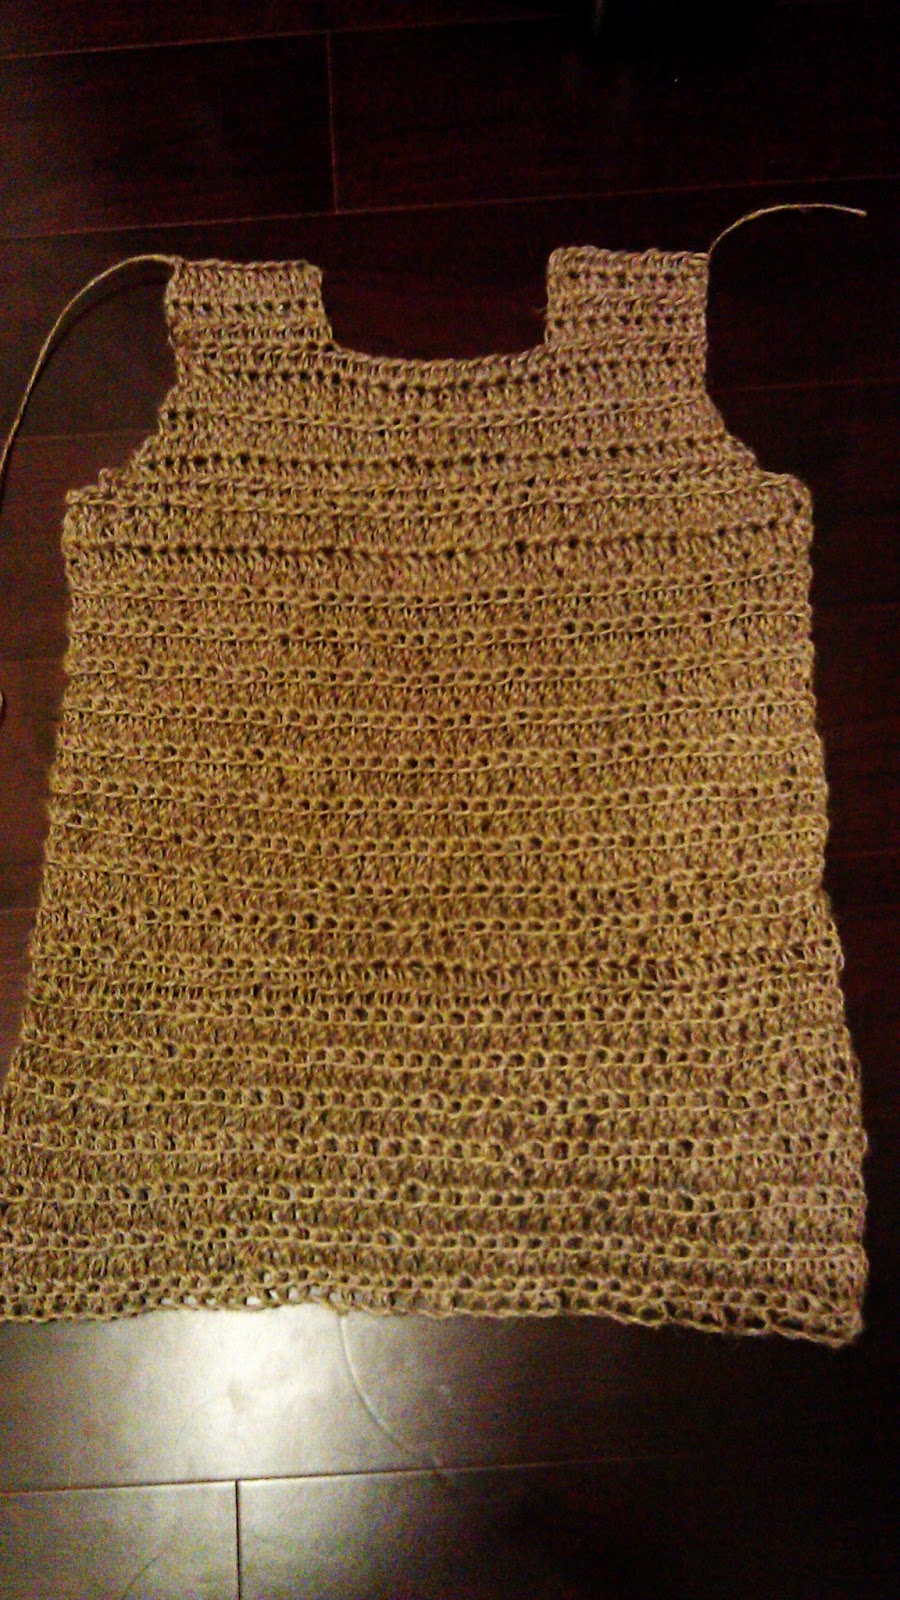 Crochet fangirl crocheted chainmail crocheted chainmail bankloansurffo Image collections